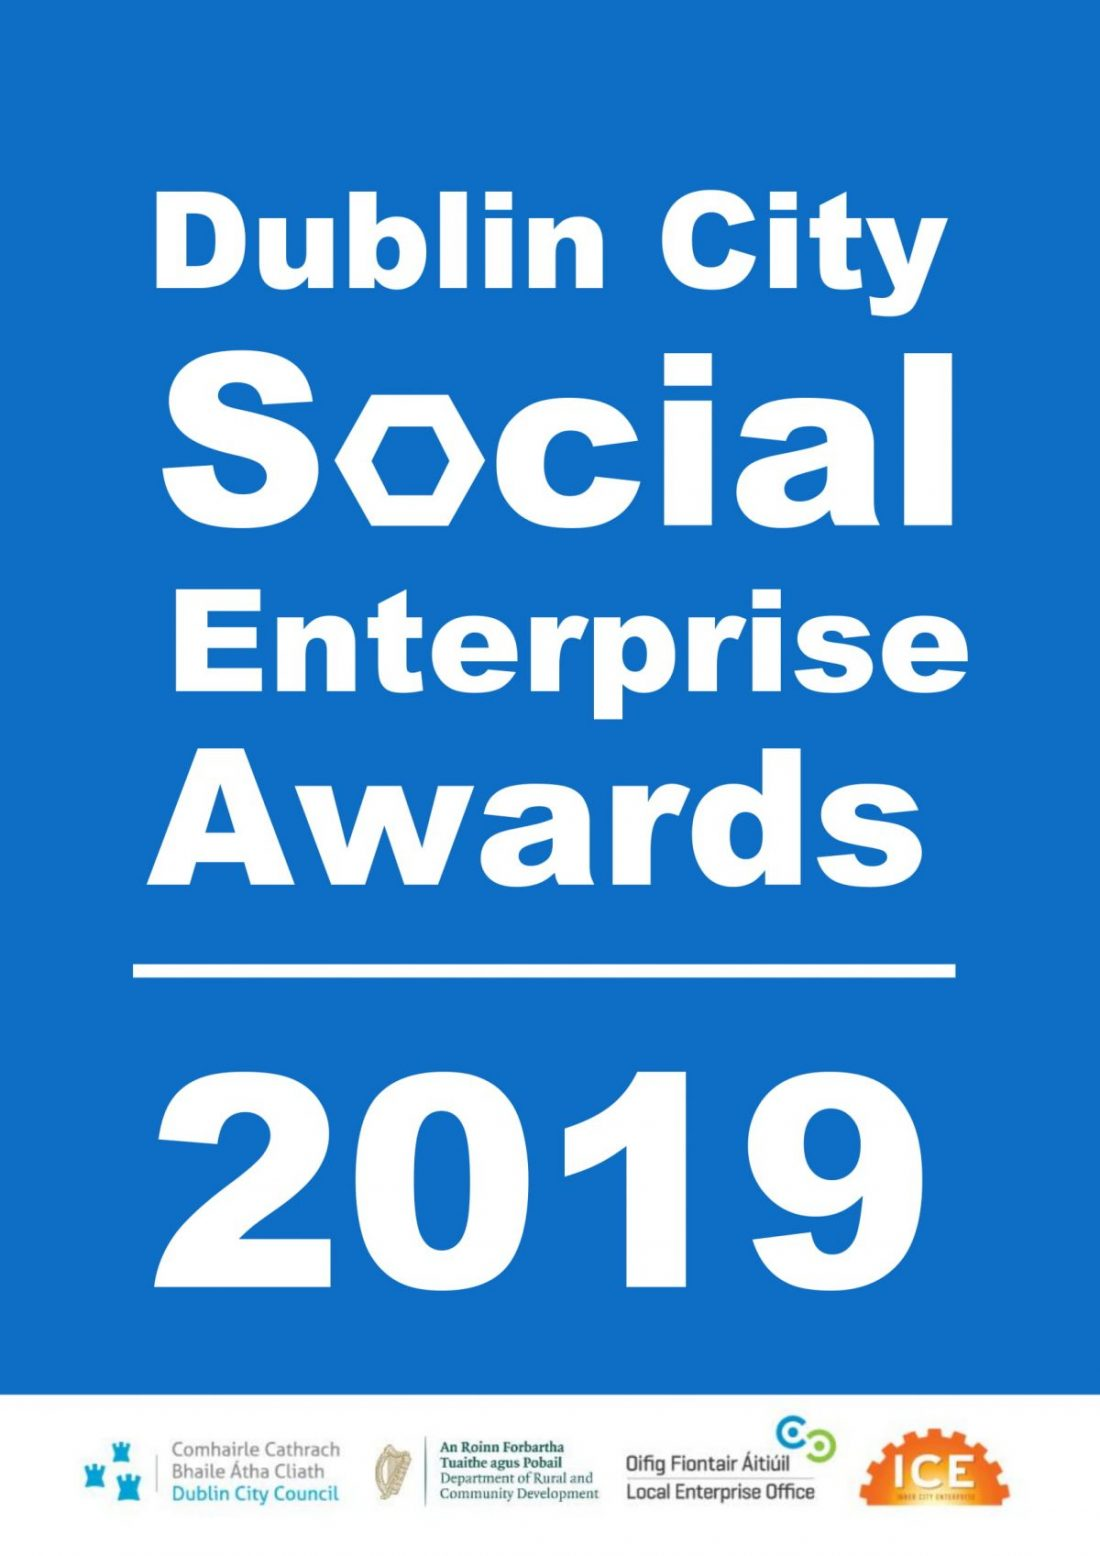 2019 Dublin City Social Enterprise Awards – Open Call For Applications Closing Date Extended to 31st May 2019